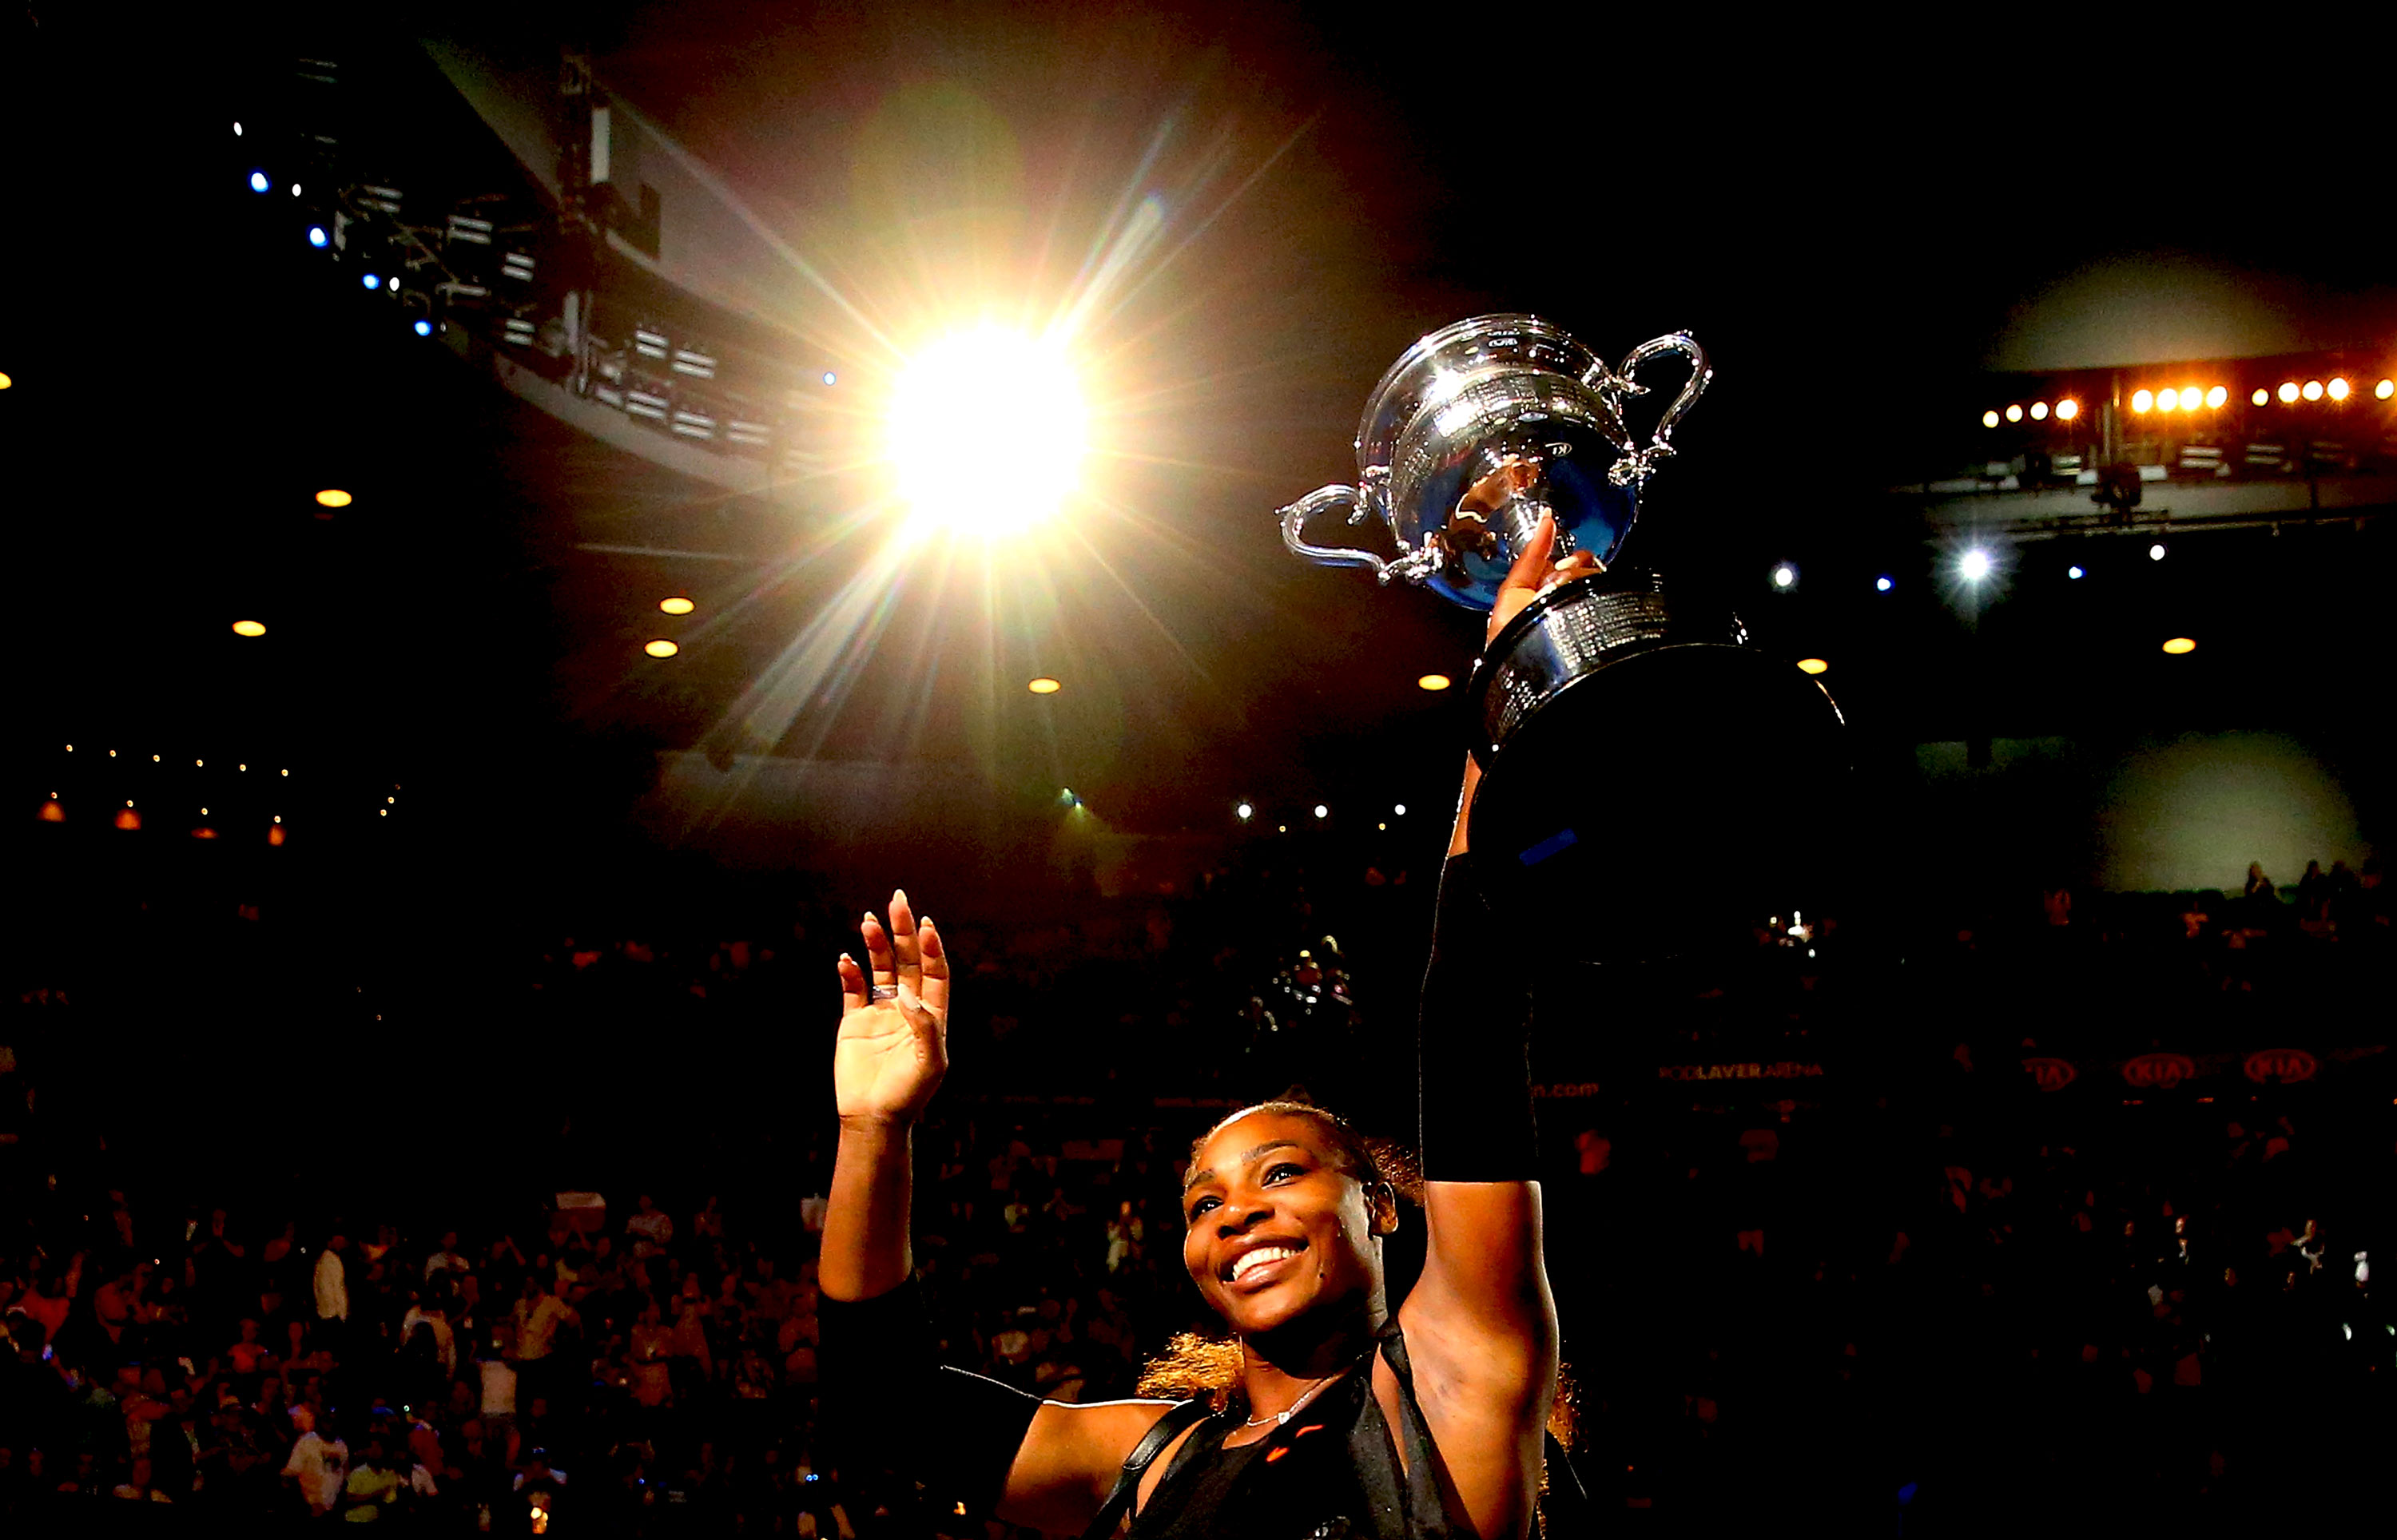 66c4e7eecde6 Serena Williams waves to the crowd as she leaves the court with the Daphne  Akhurst Trophy on Jan. 28 after winning the women s singles final of the  2017 ...